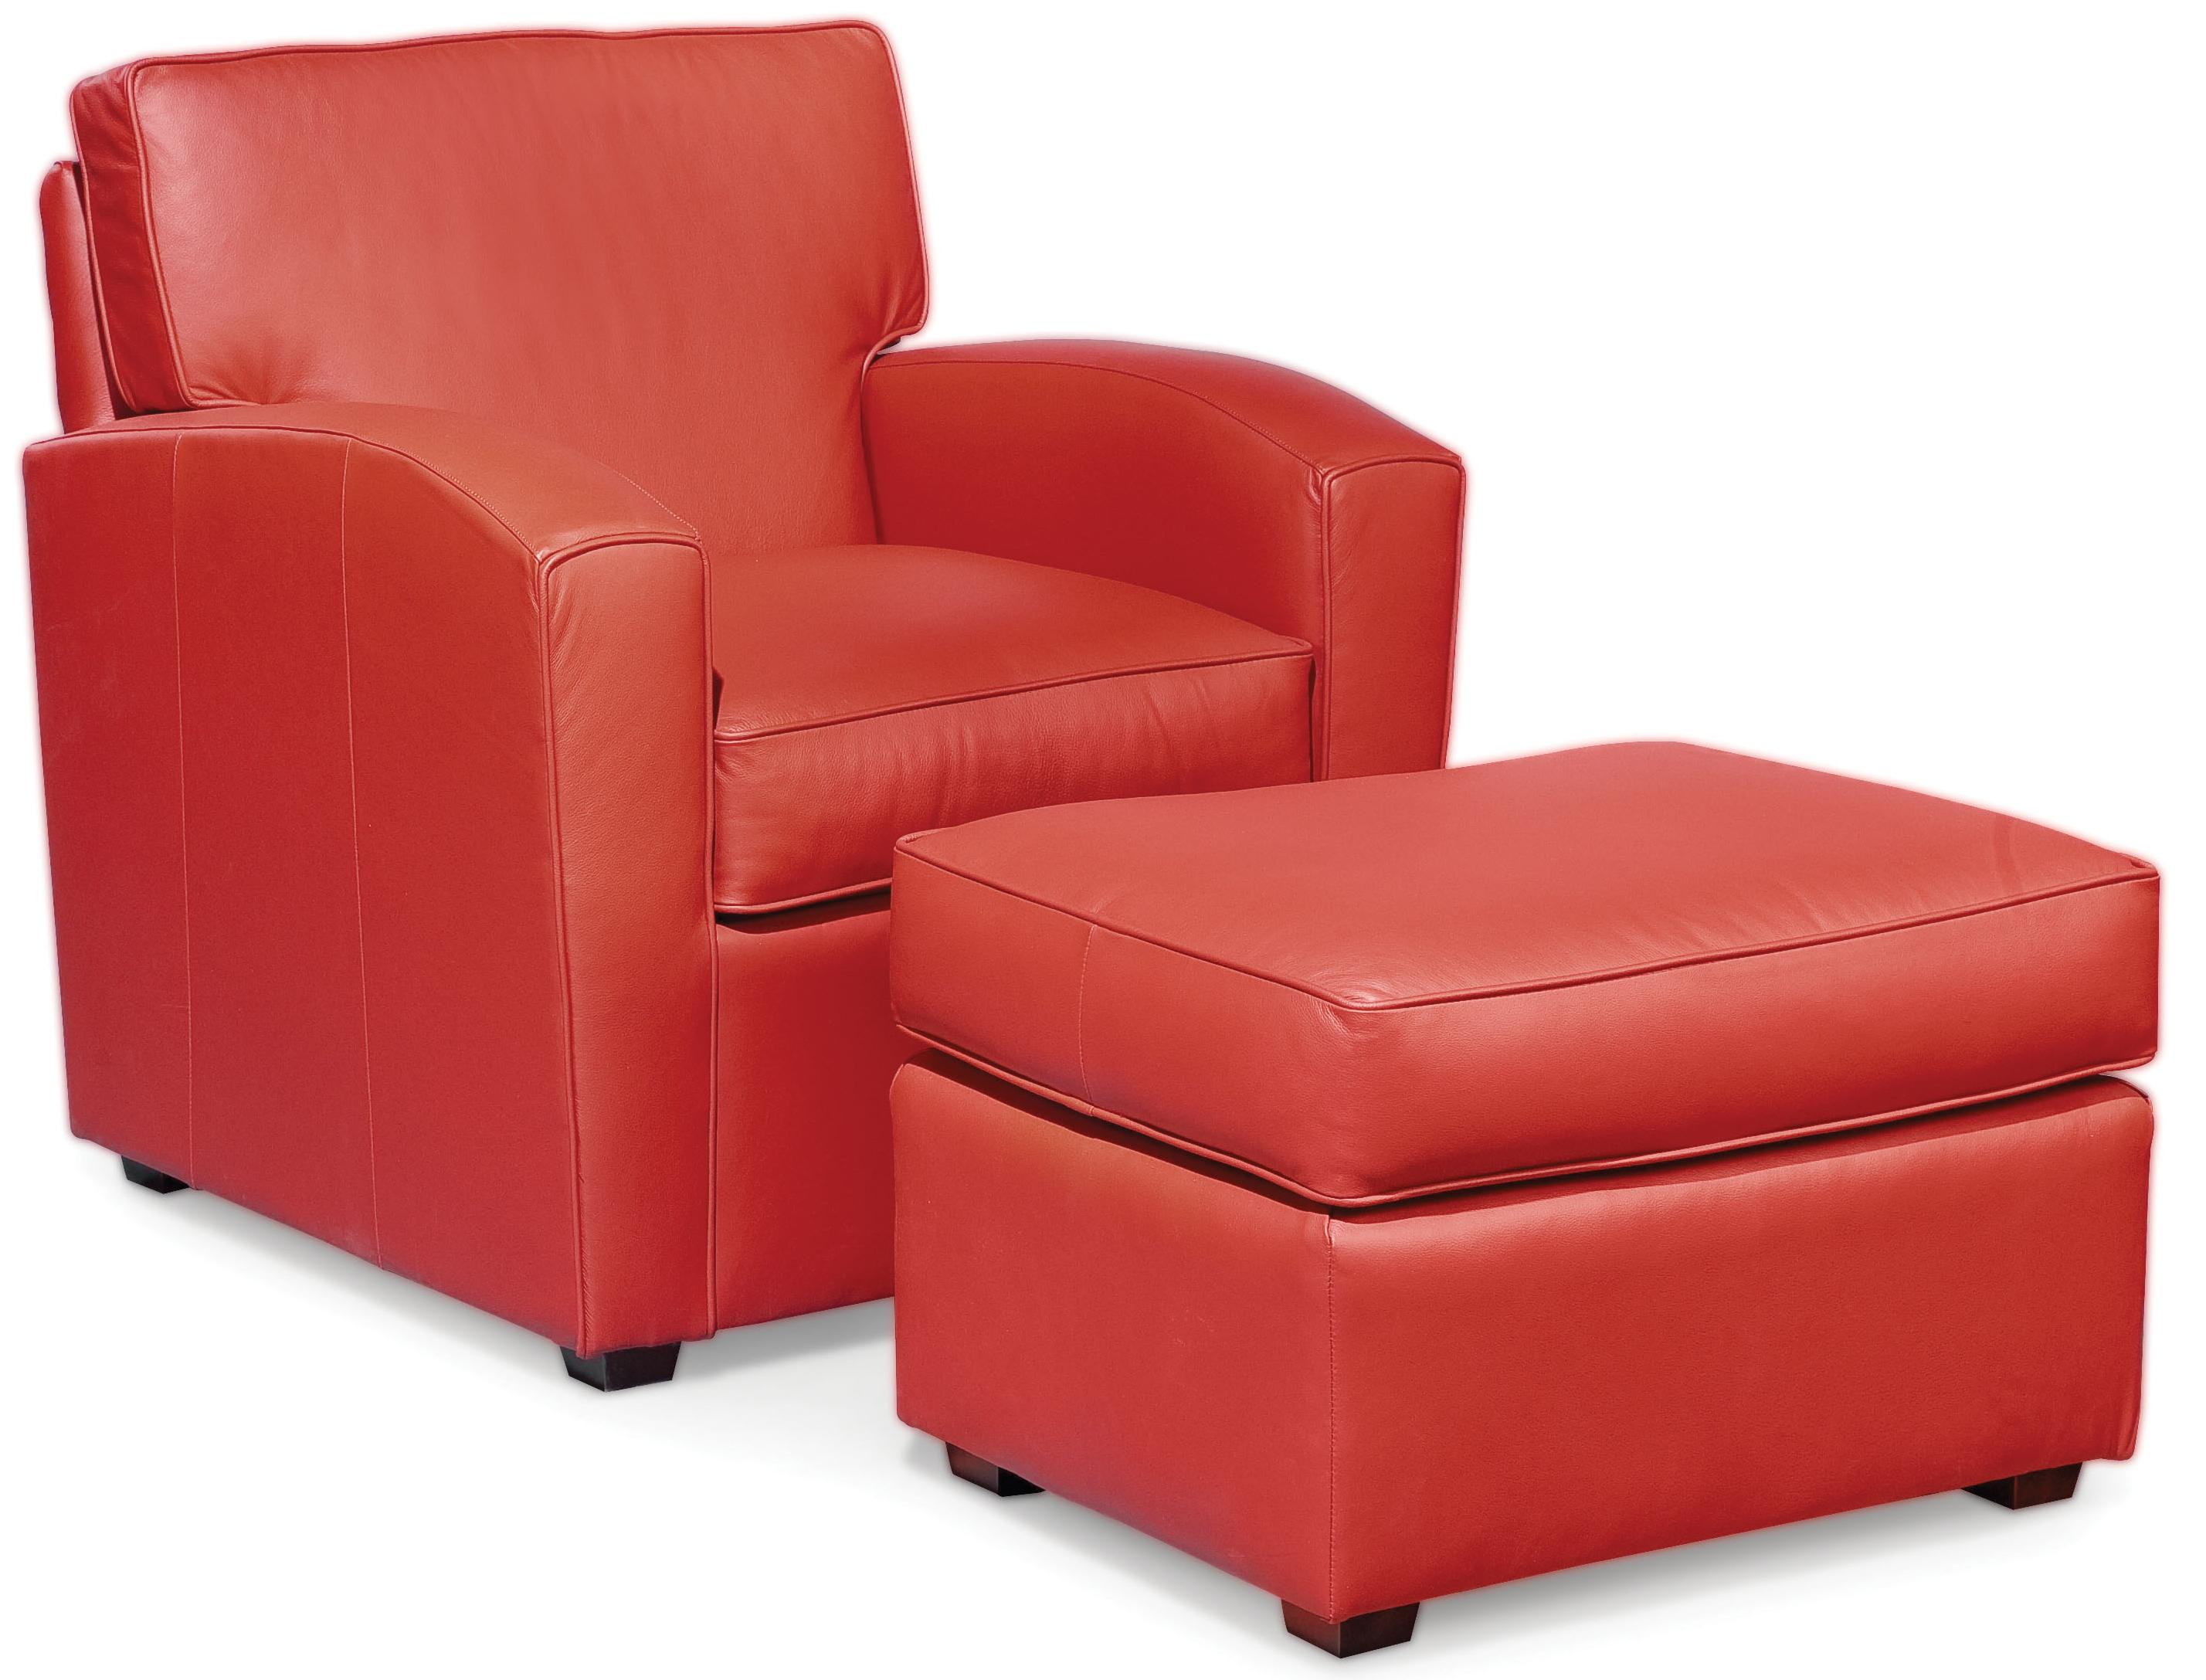 Fairfield Chairs Chair & Ottoman - Item Number: 6035-01+20